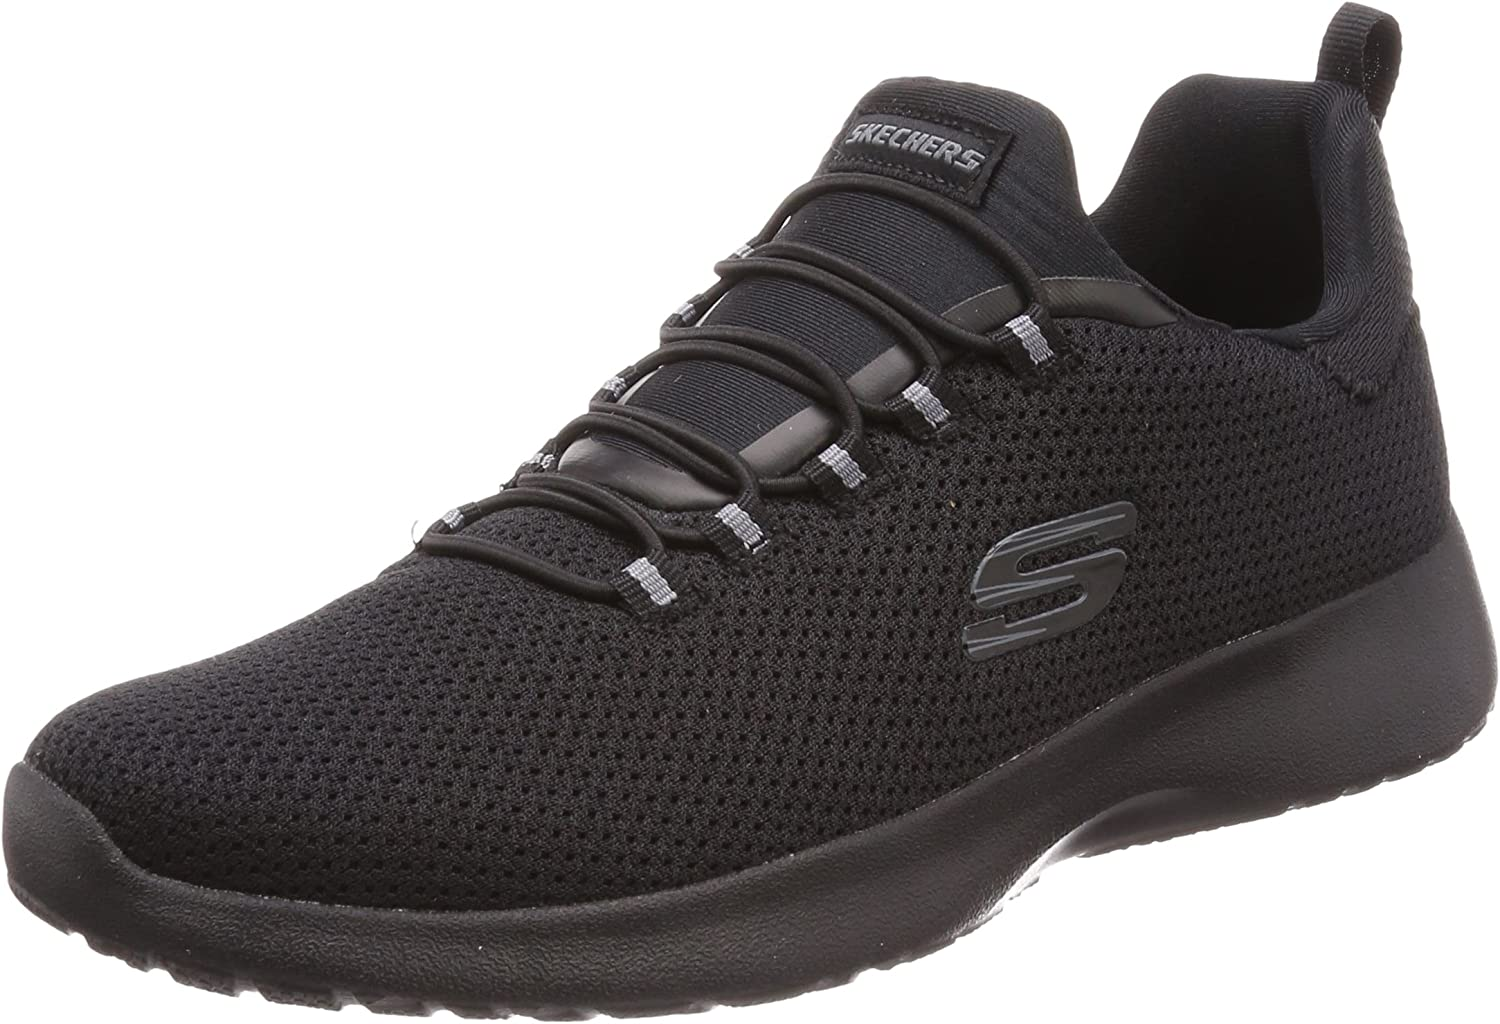 Skechers Men's Dynamight Low Top shoes Black